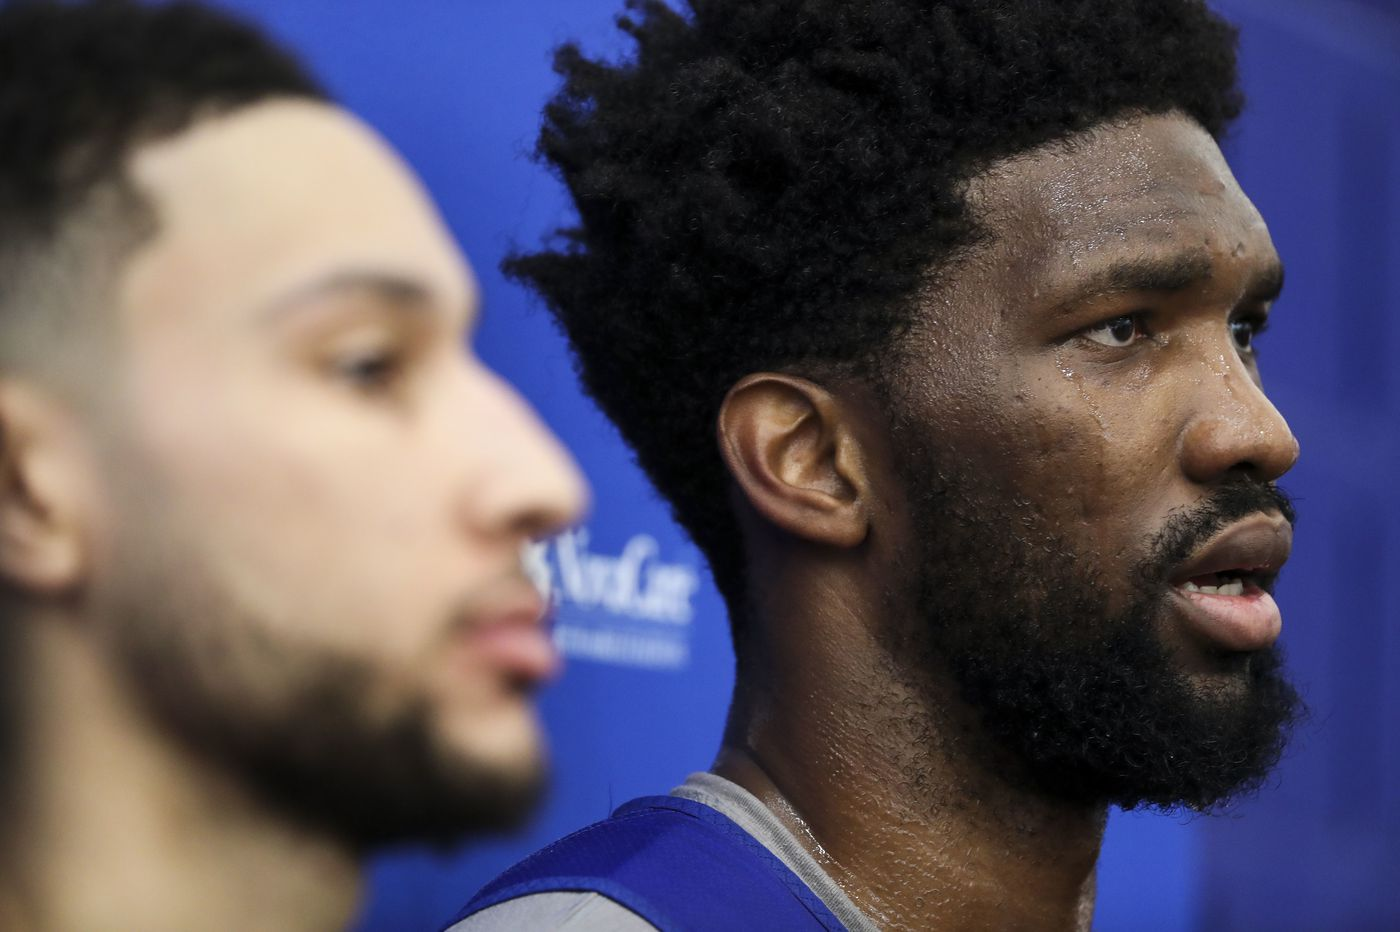 Joel Embiid and Ben Simmons are still the Sixers' nucleus, and team's new president wants it that way